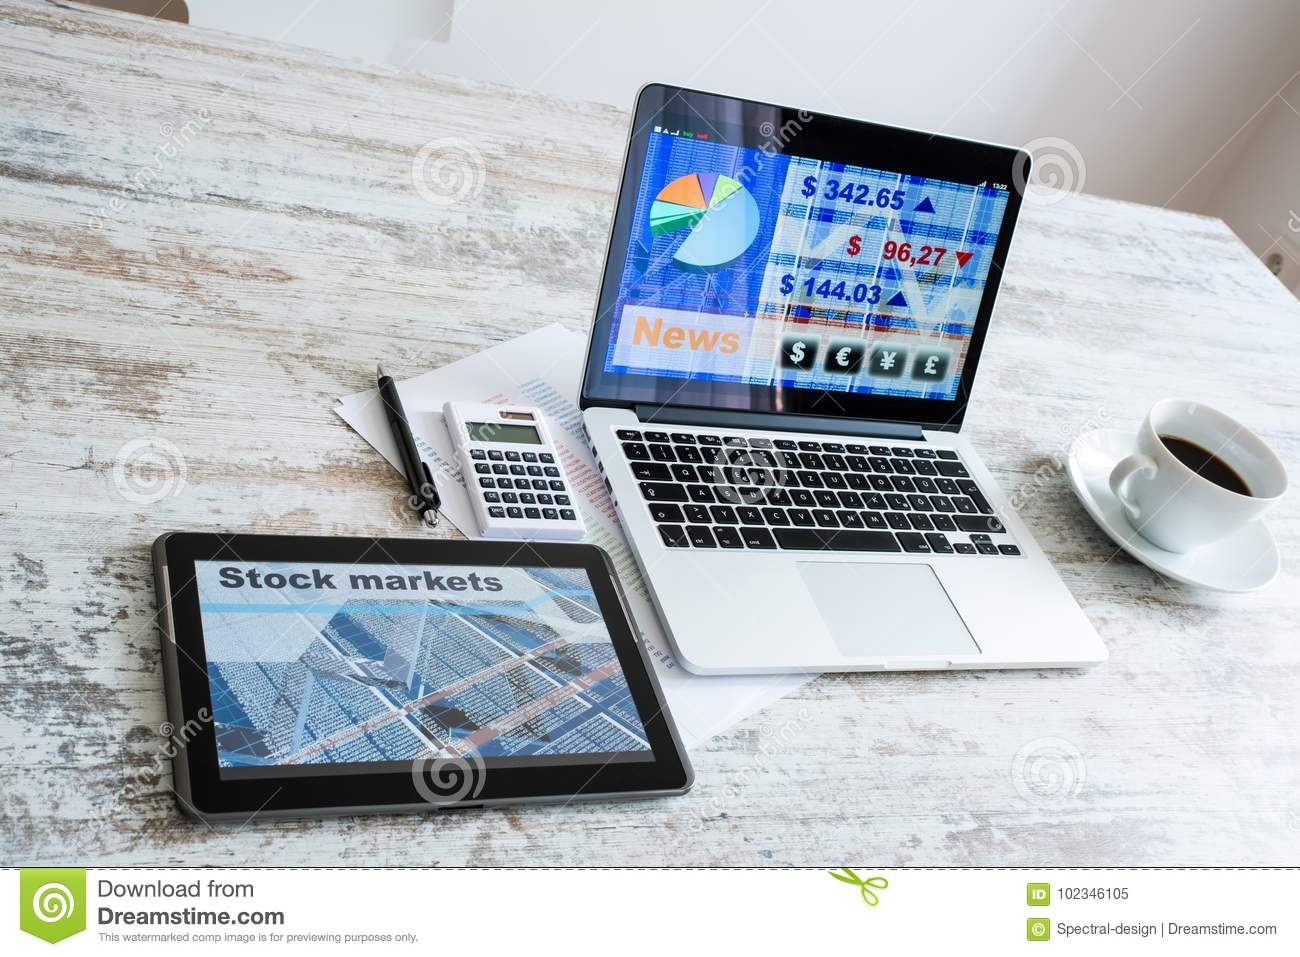 Stock market calculations and trading with a tablet pc and lapto download stock market calculations and trading with a tablet pc and lapto stock image image ccuart Image collections